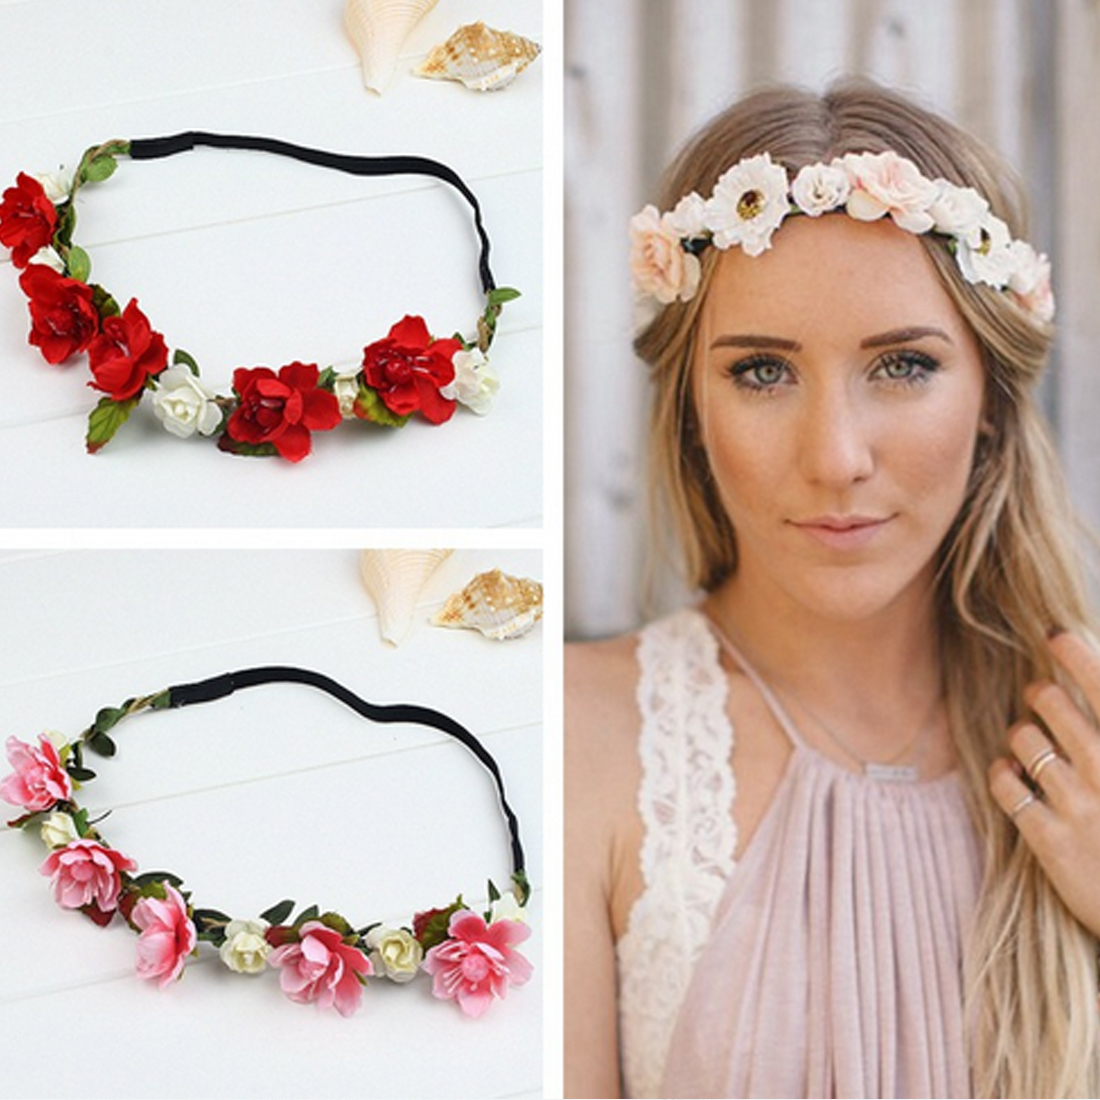 Vogue girls bride flowers headwear bohemian style peony flower crown vogue girls bride flowers headwear bohemian style peony flower crown women elastic headband plastic garland hair accessories izmirmasajfo